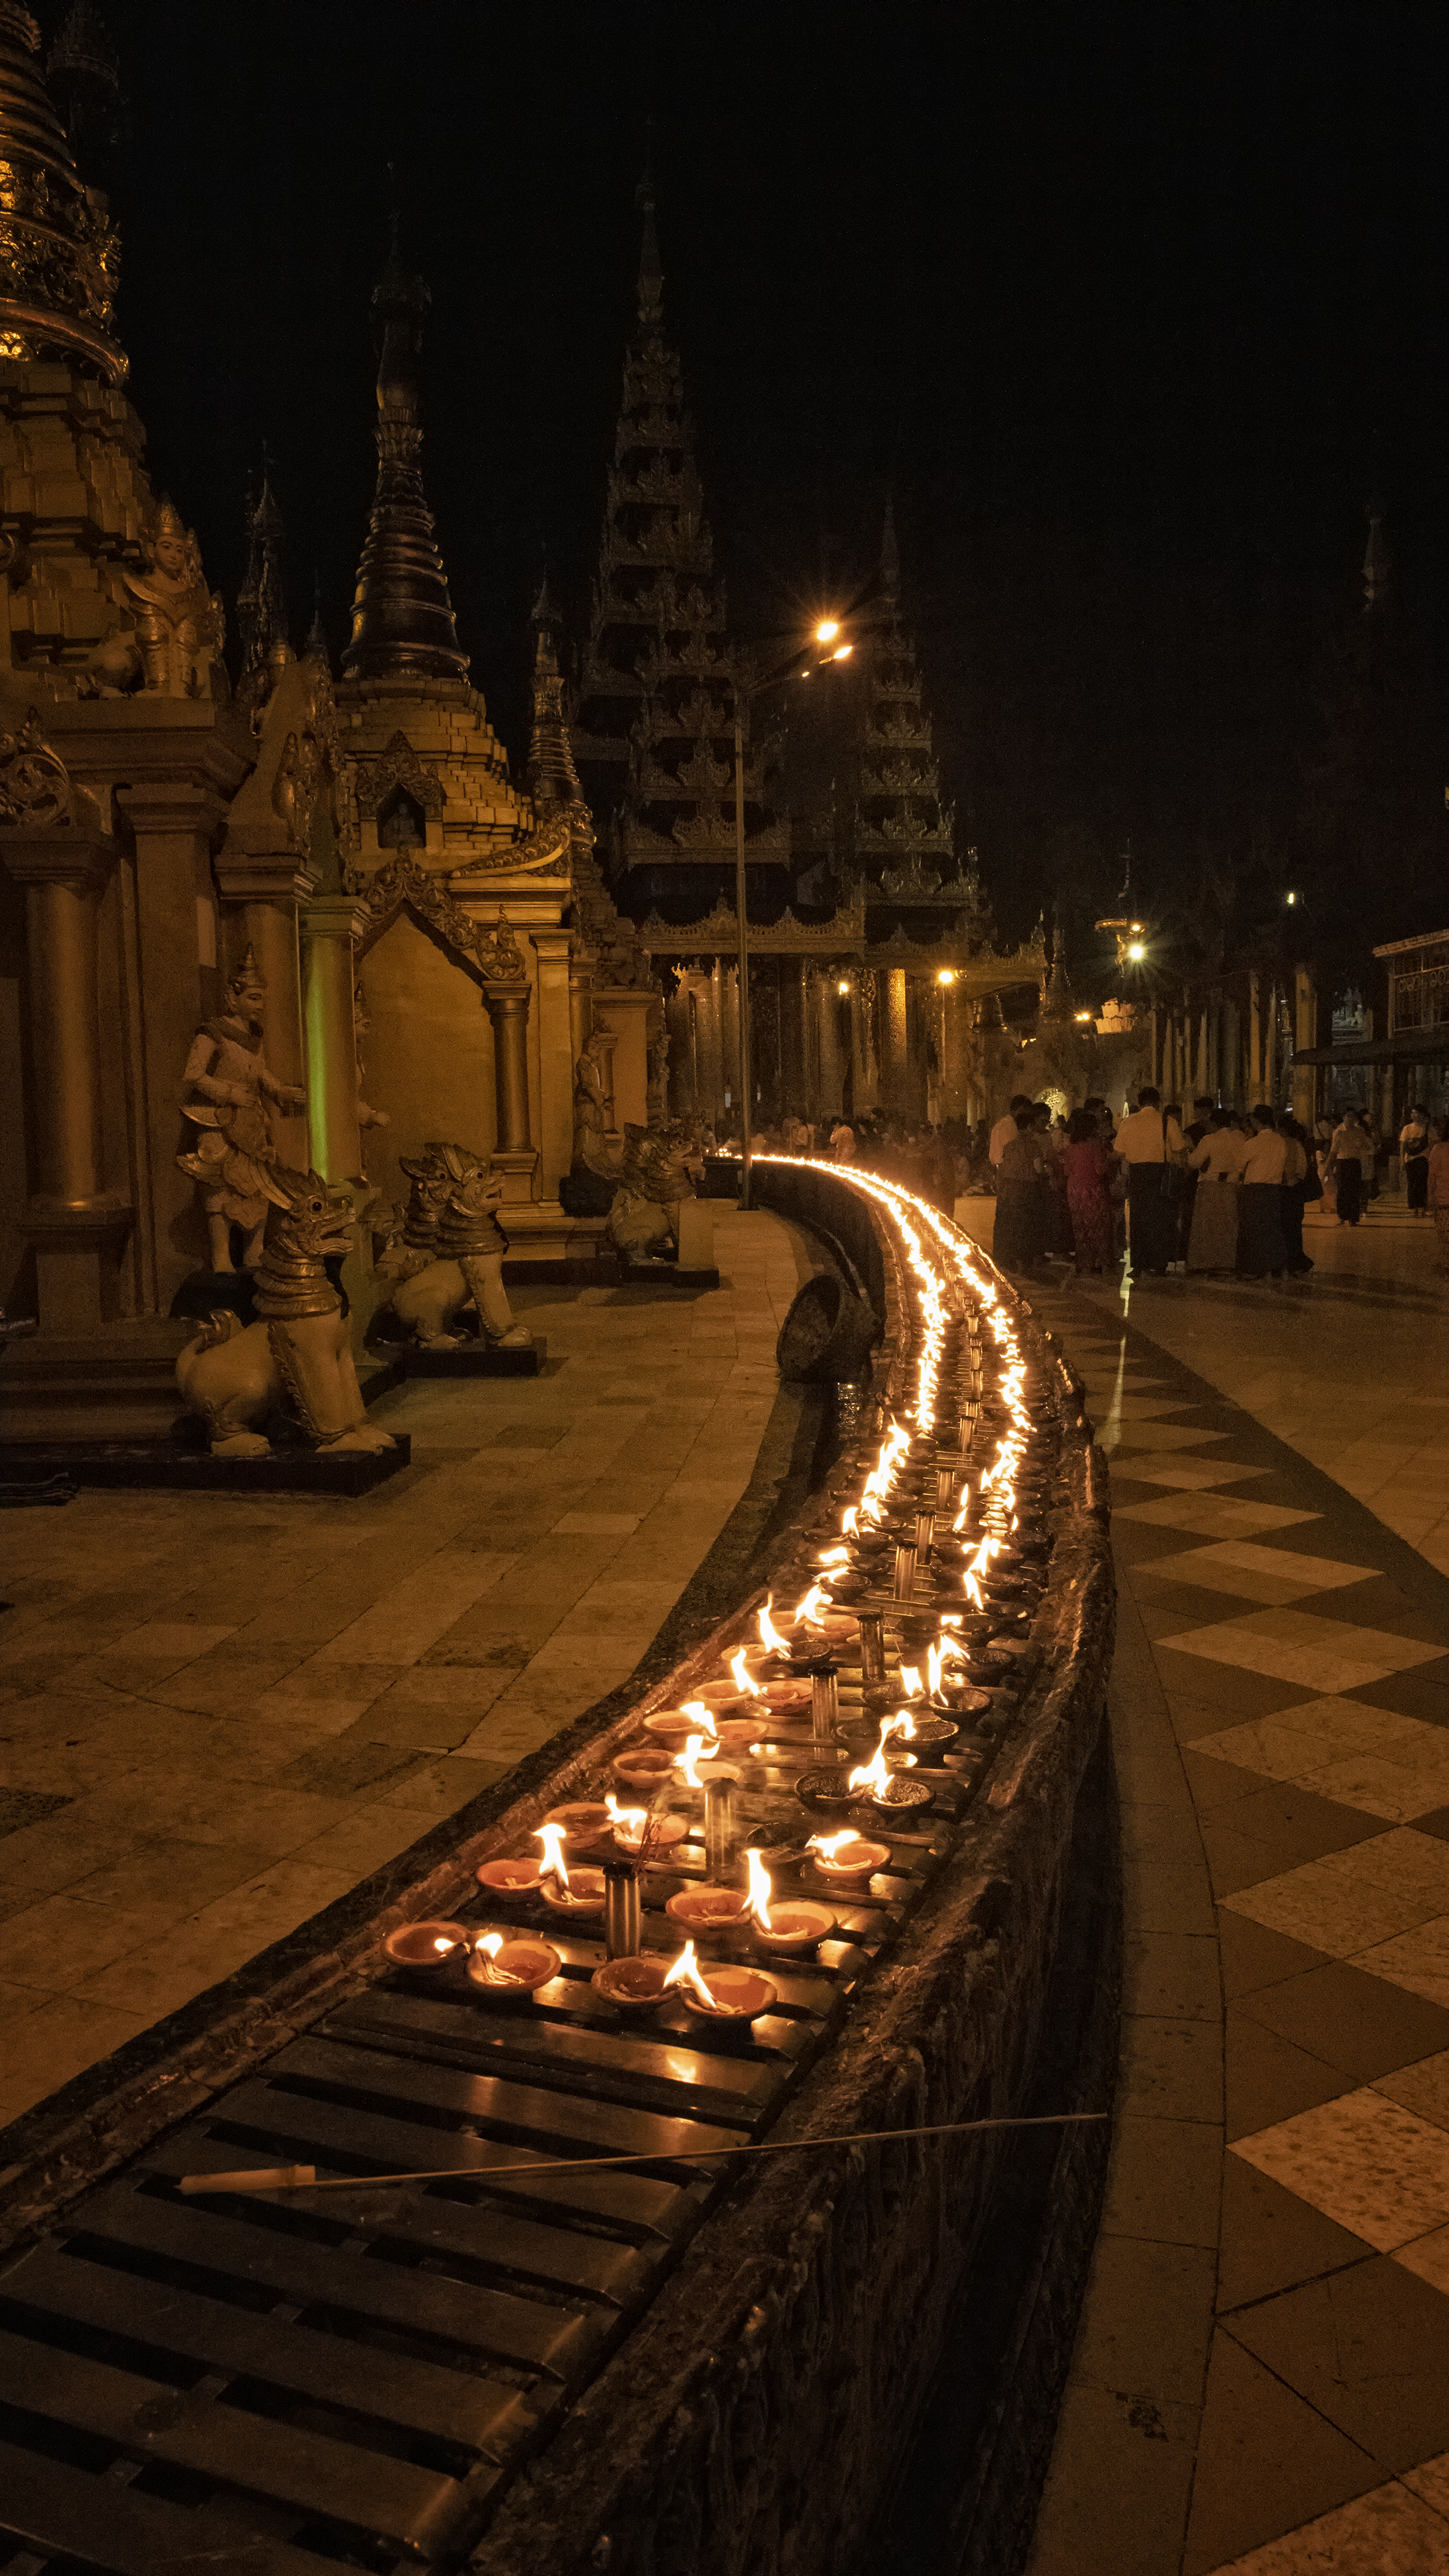 Candles at the Shwedagon Pagoda